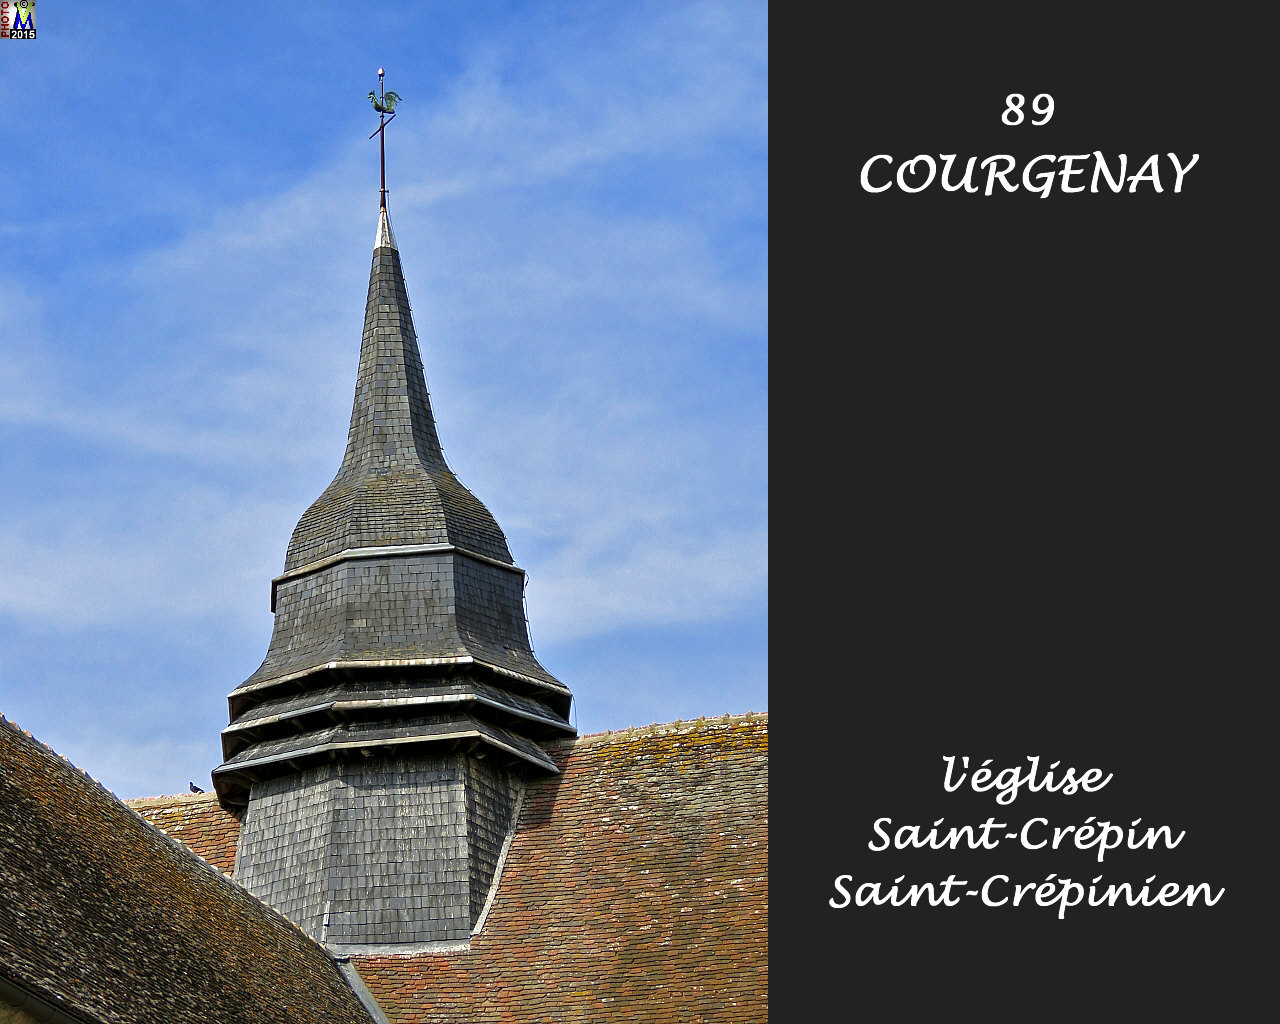 89COURGENAY_eglise_112.jpg